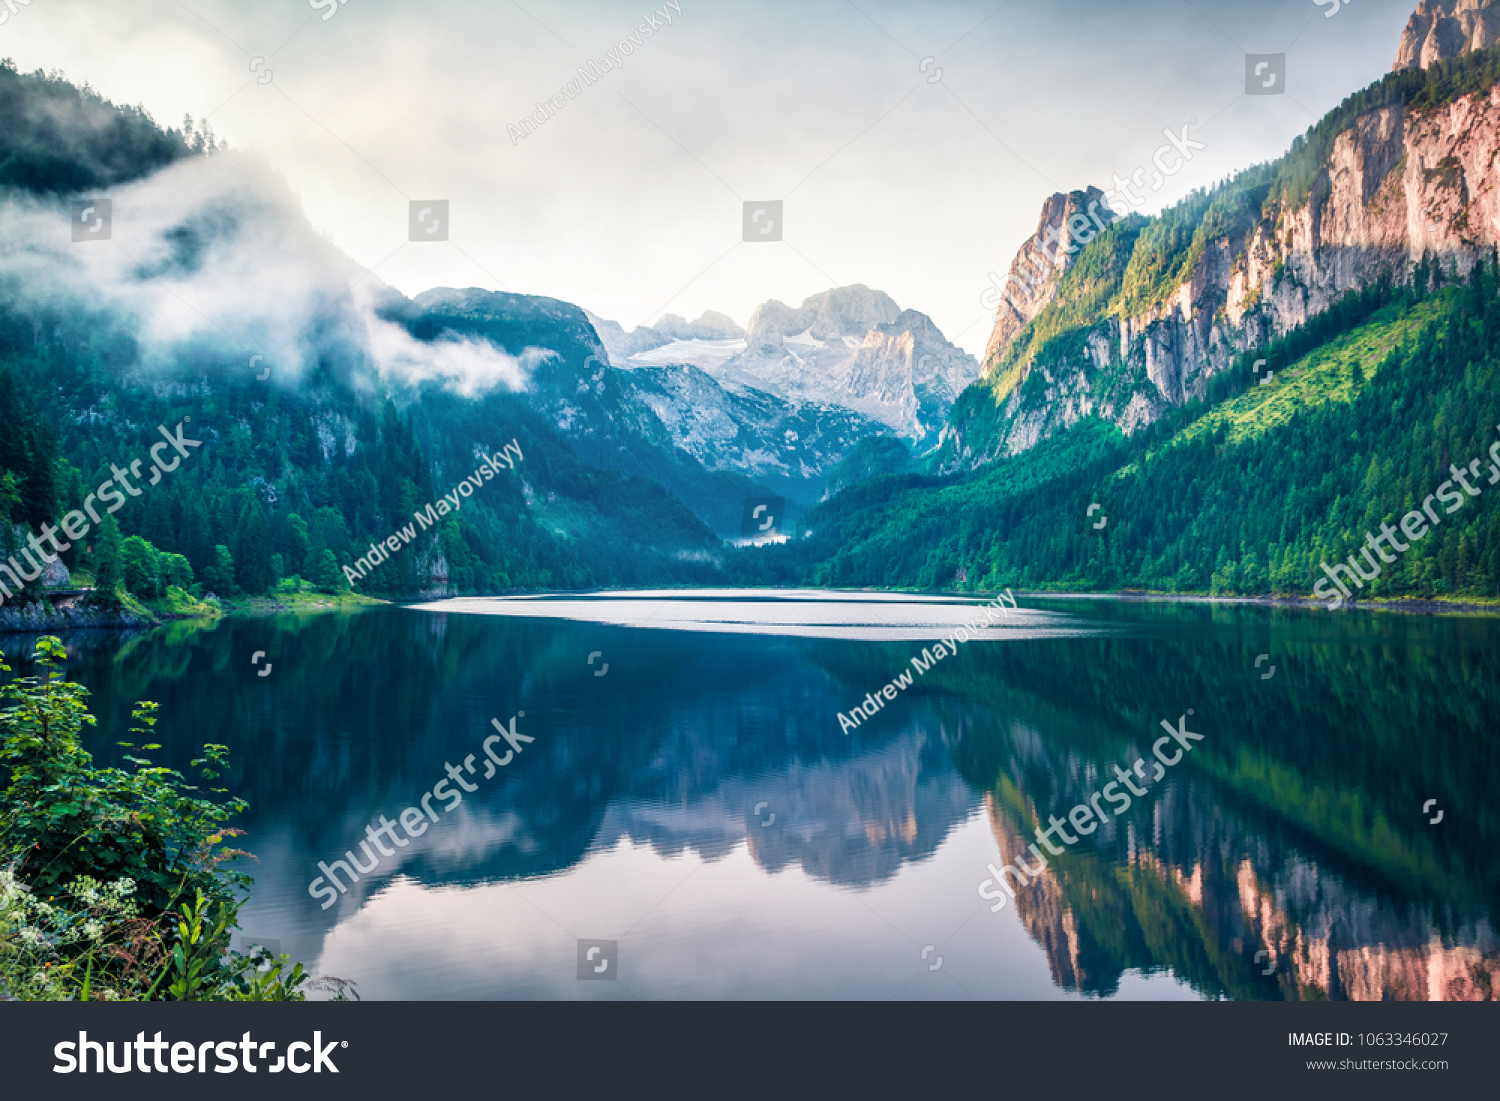 Colorful summer scene of Vorderer ( Gosausee ) lake with Dachstein glacier on background. Amazing morning view of Austrian Alps, Upper Austria, Europe. Orton Effect.